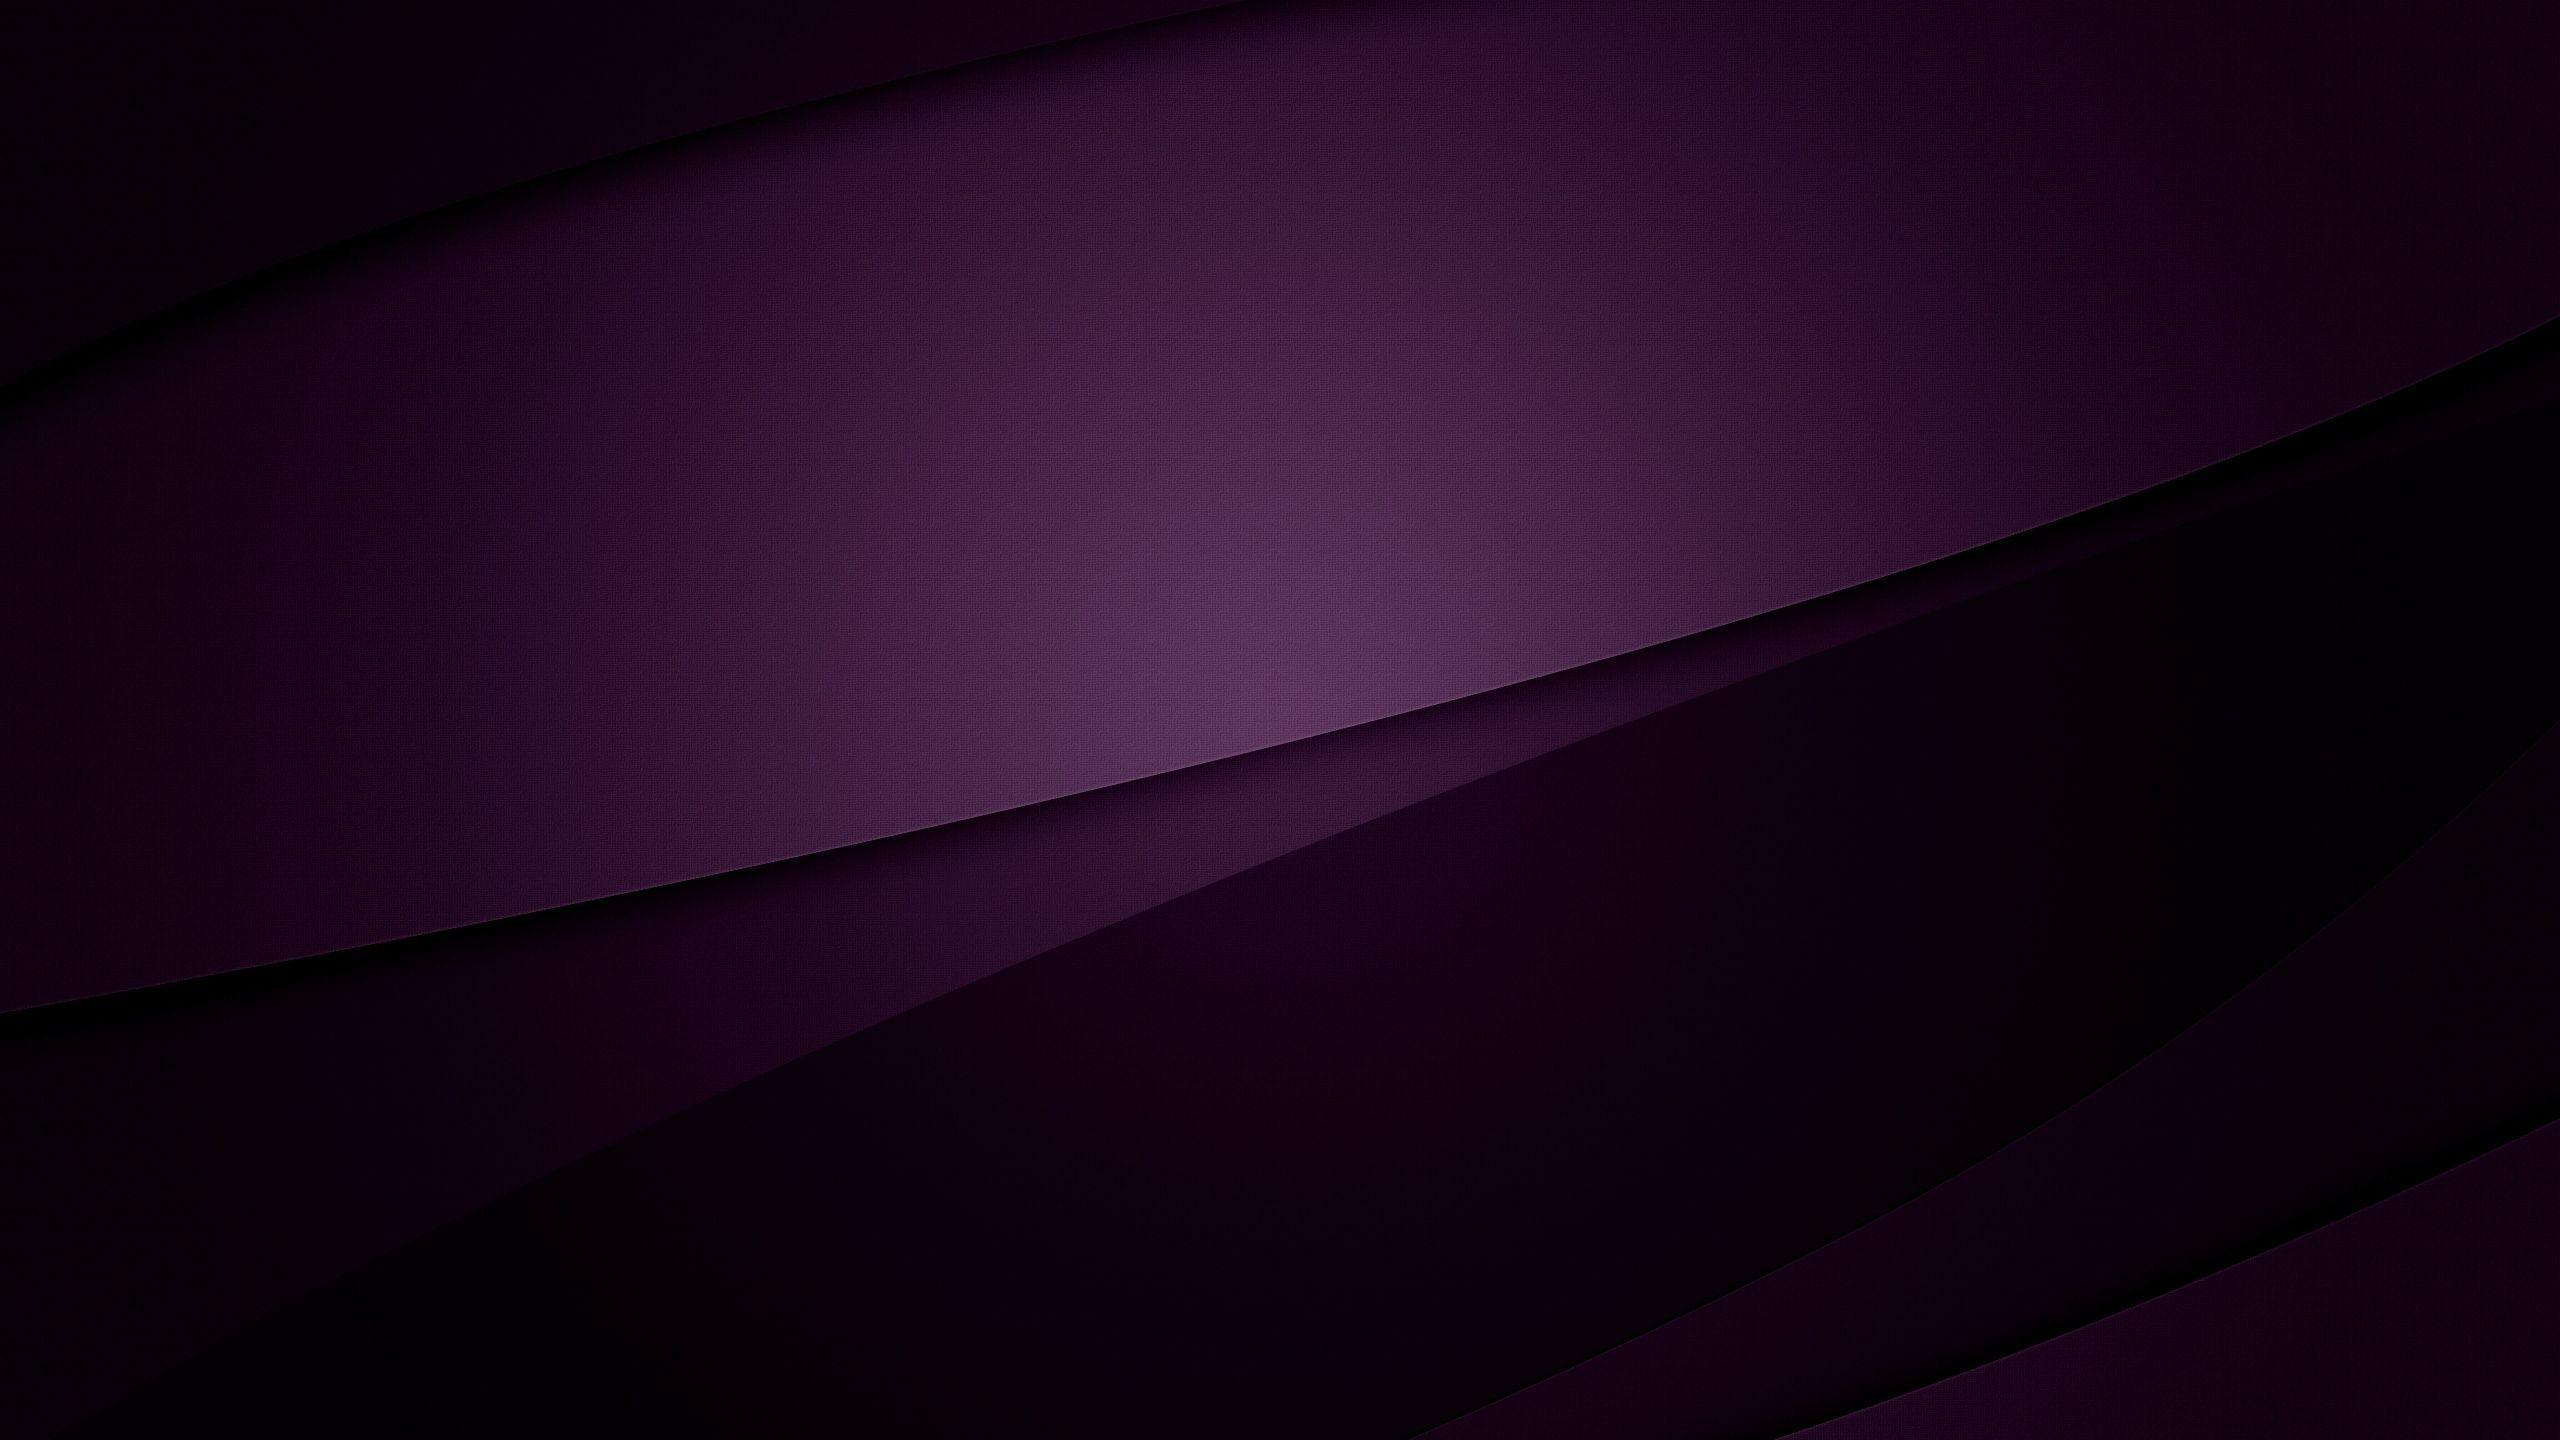 Purple Abstract wallpaper - 1305400